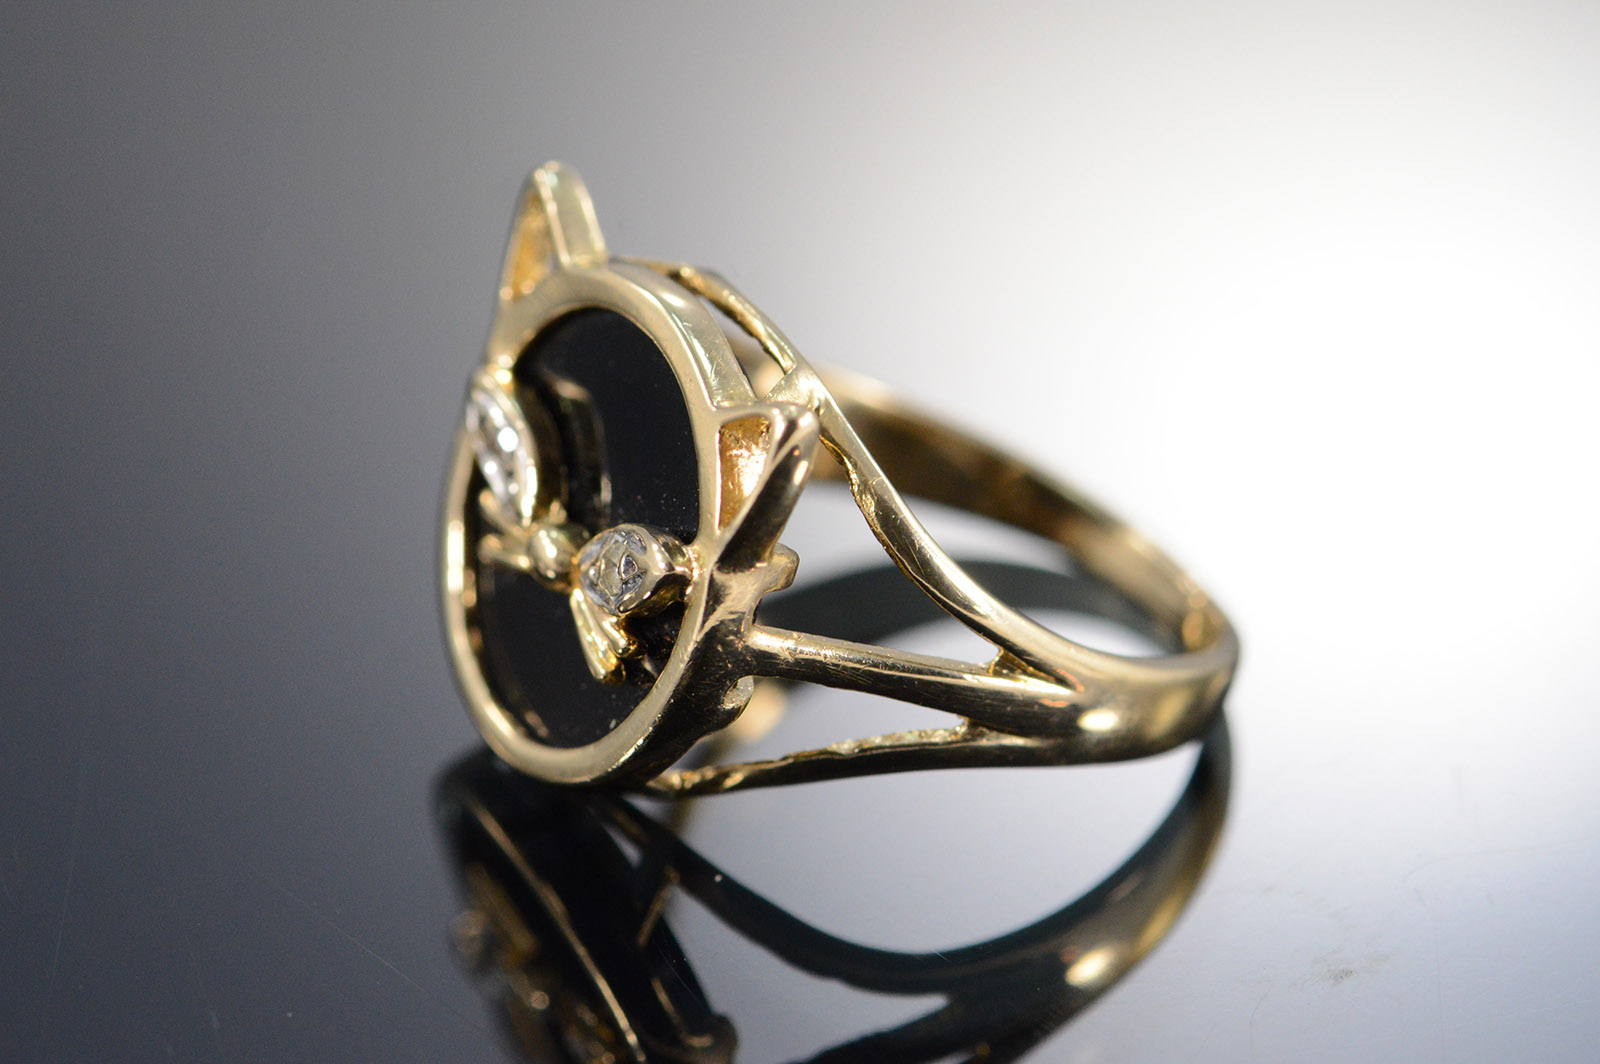 Supplies Gold Ring